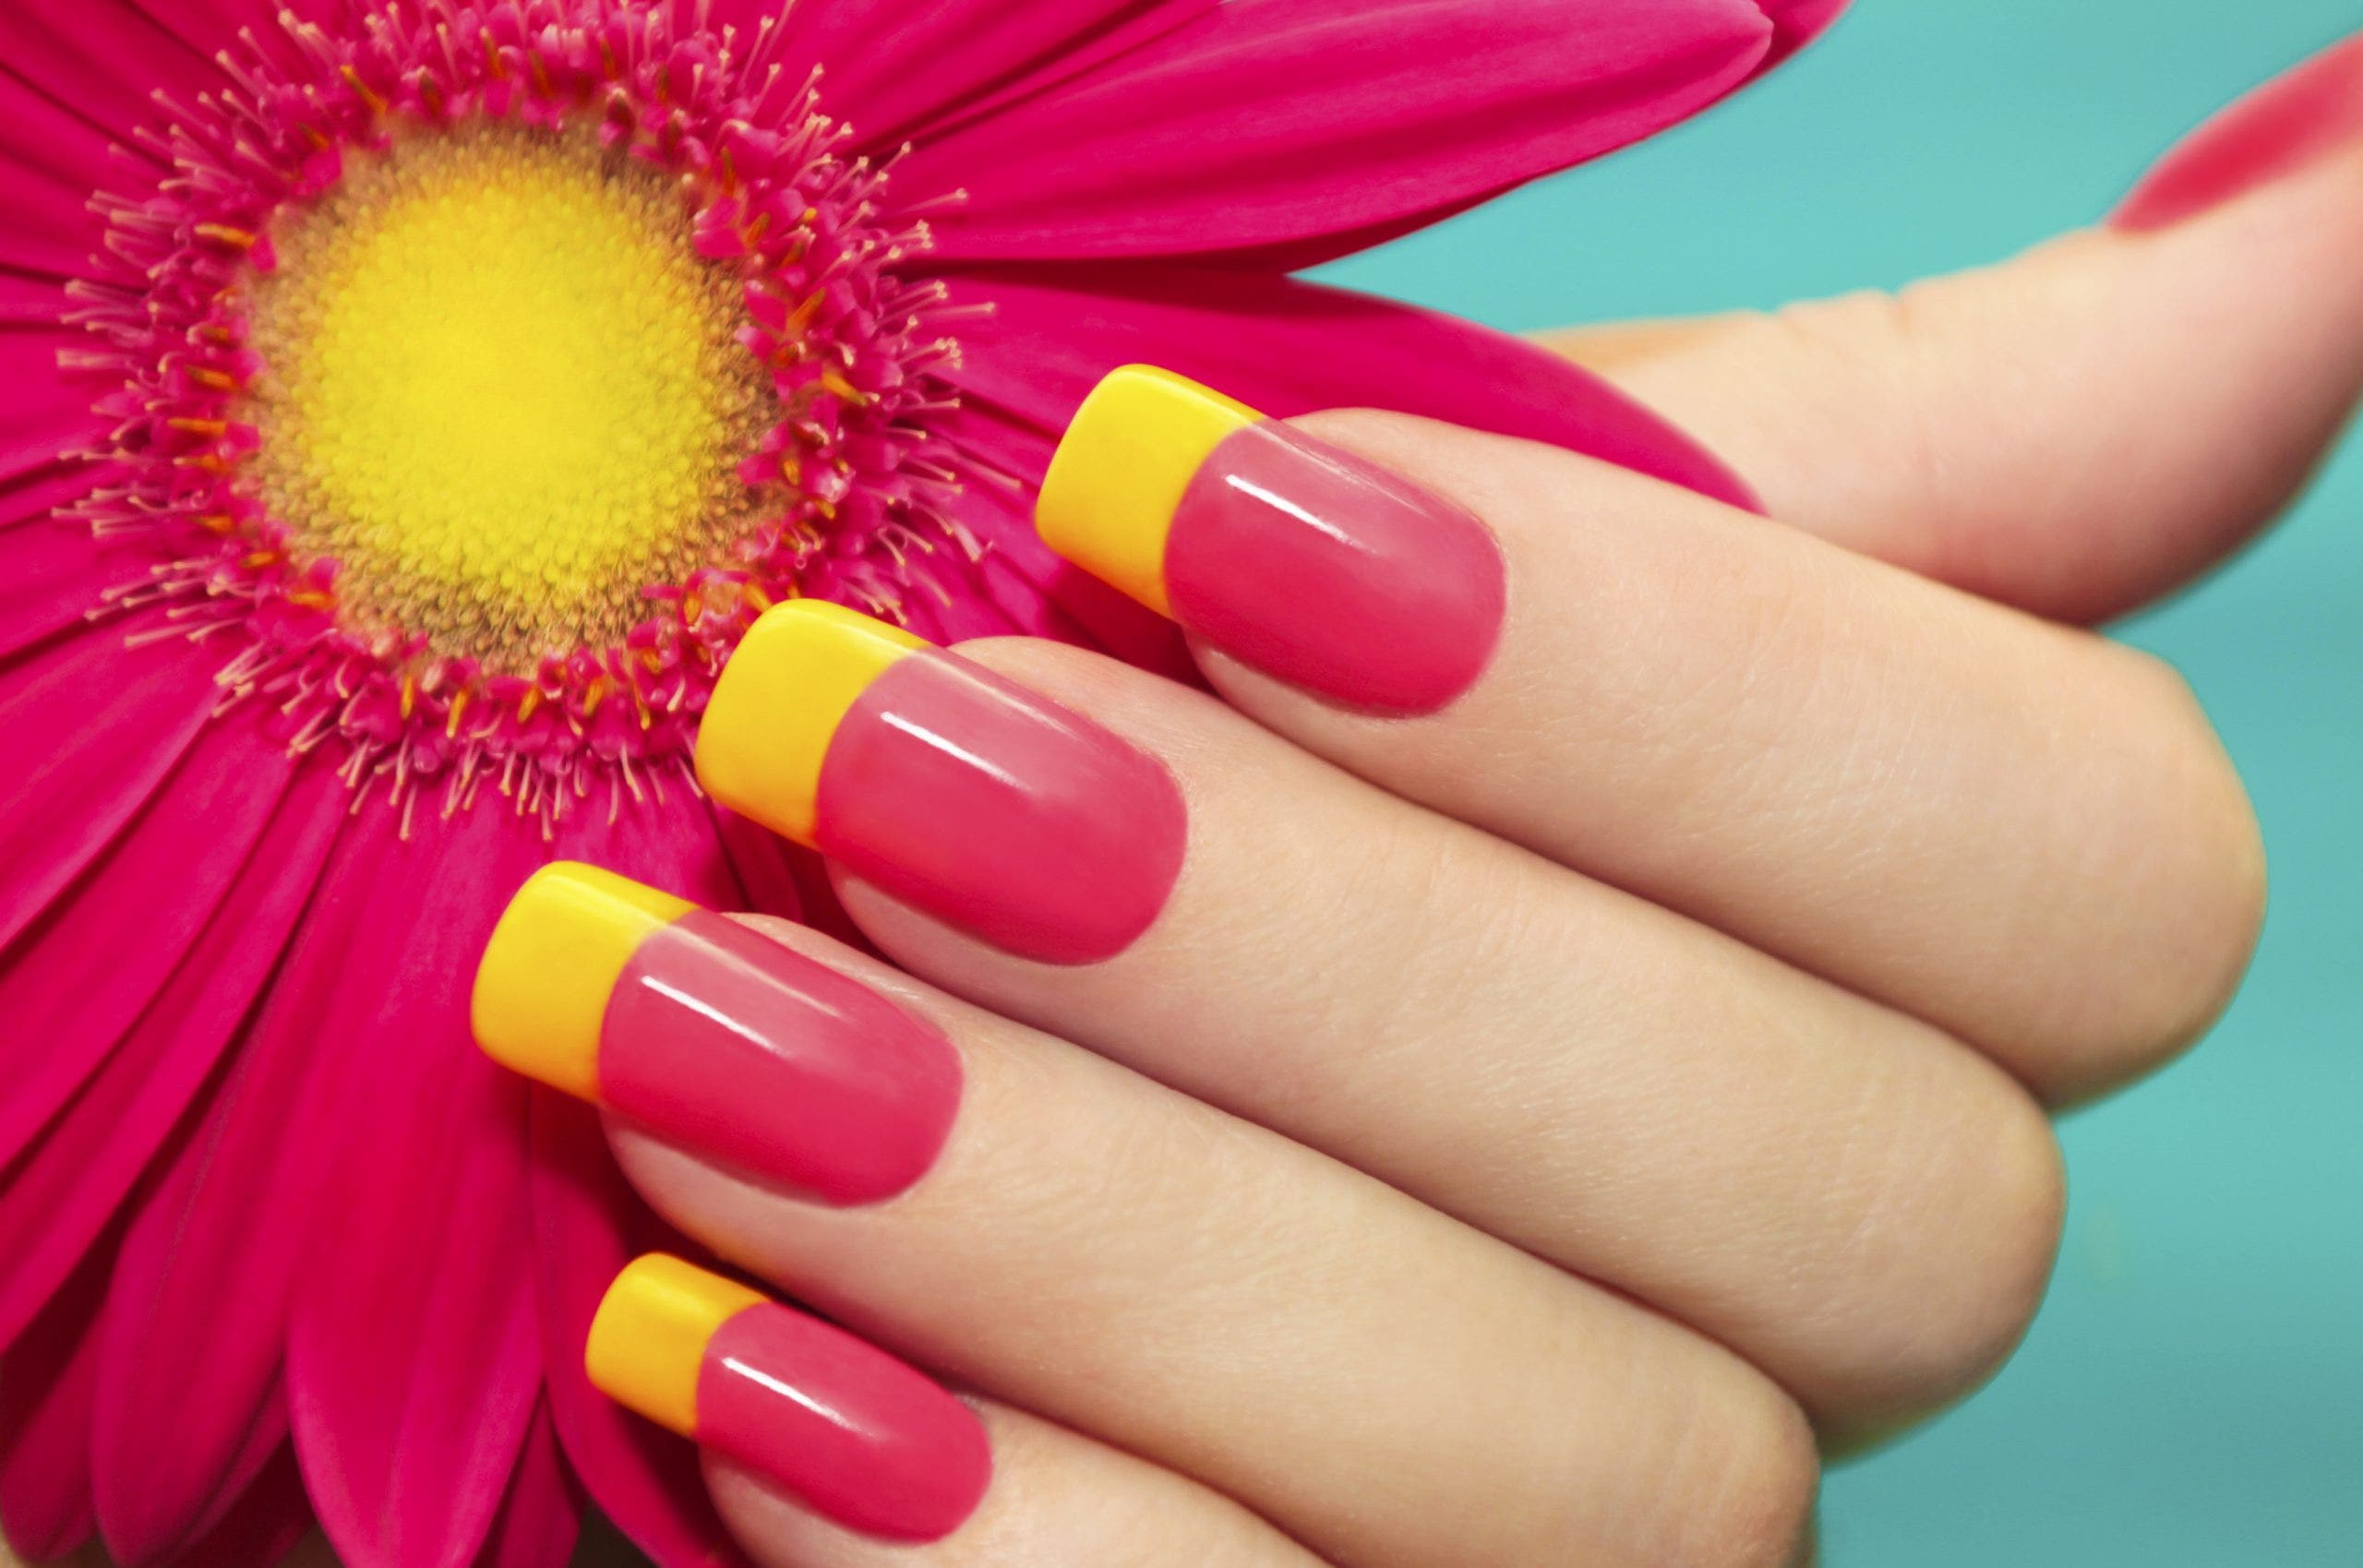 4 Easy Hacks for Healthier Nails